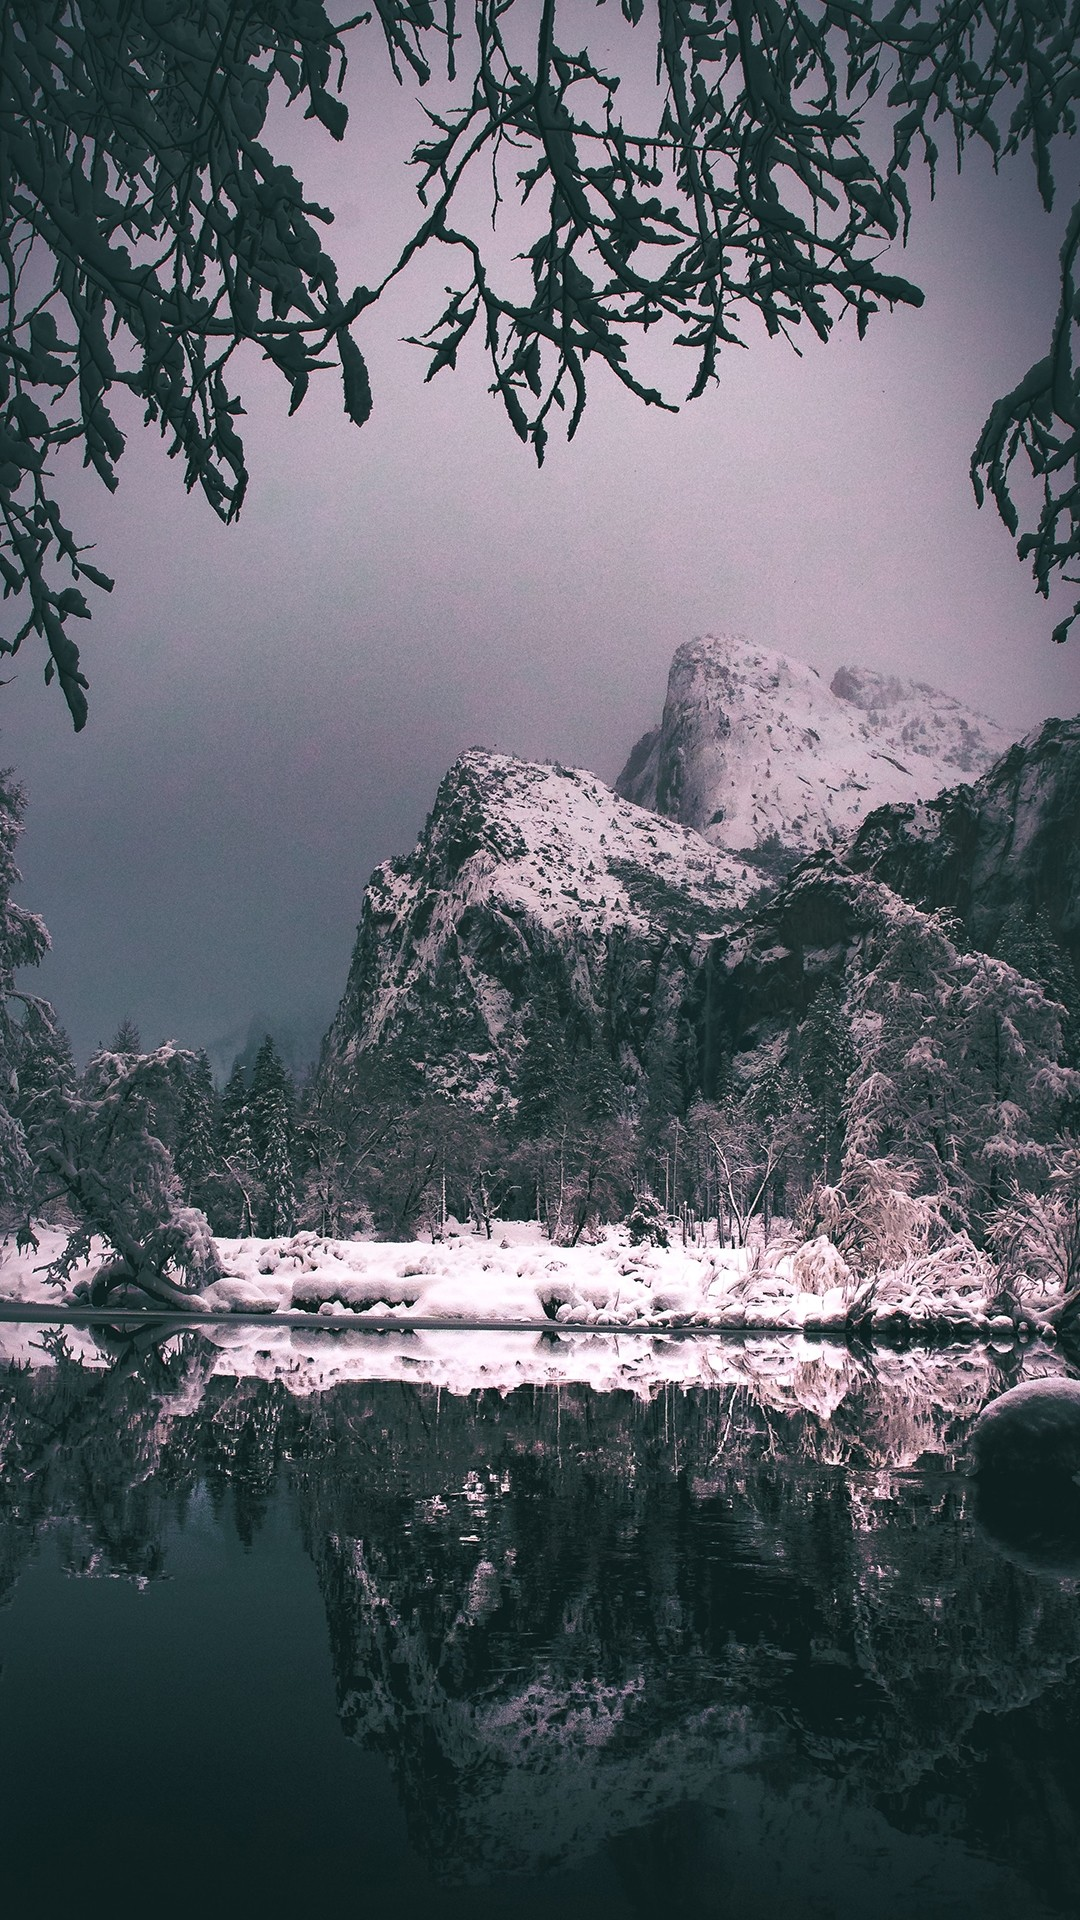 Landscape hd wallpaper for iphone